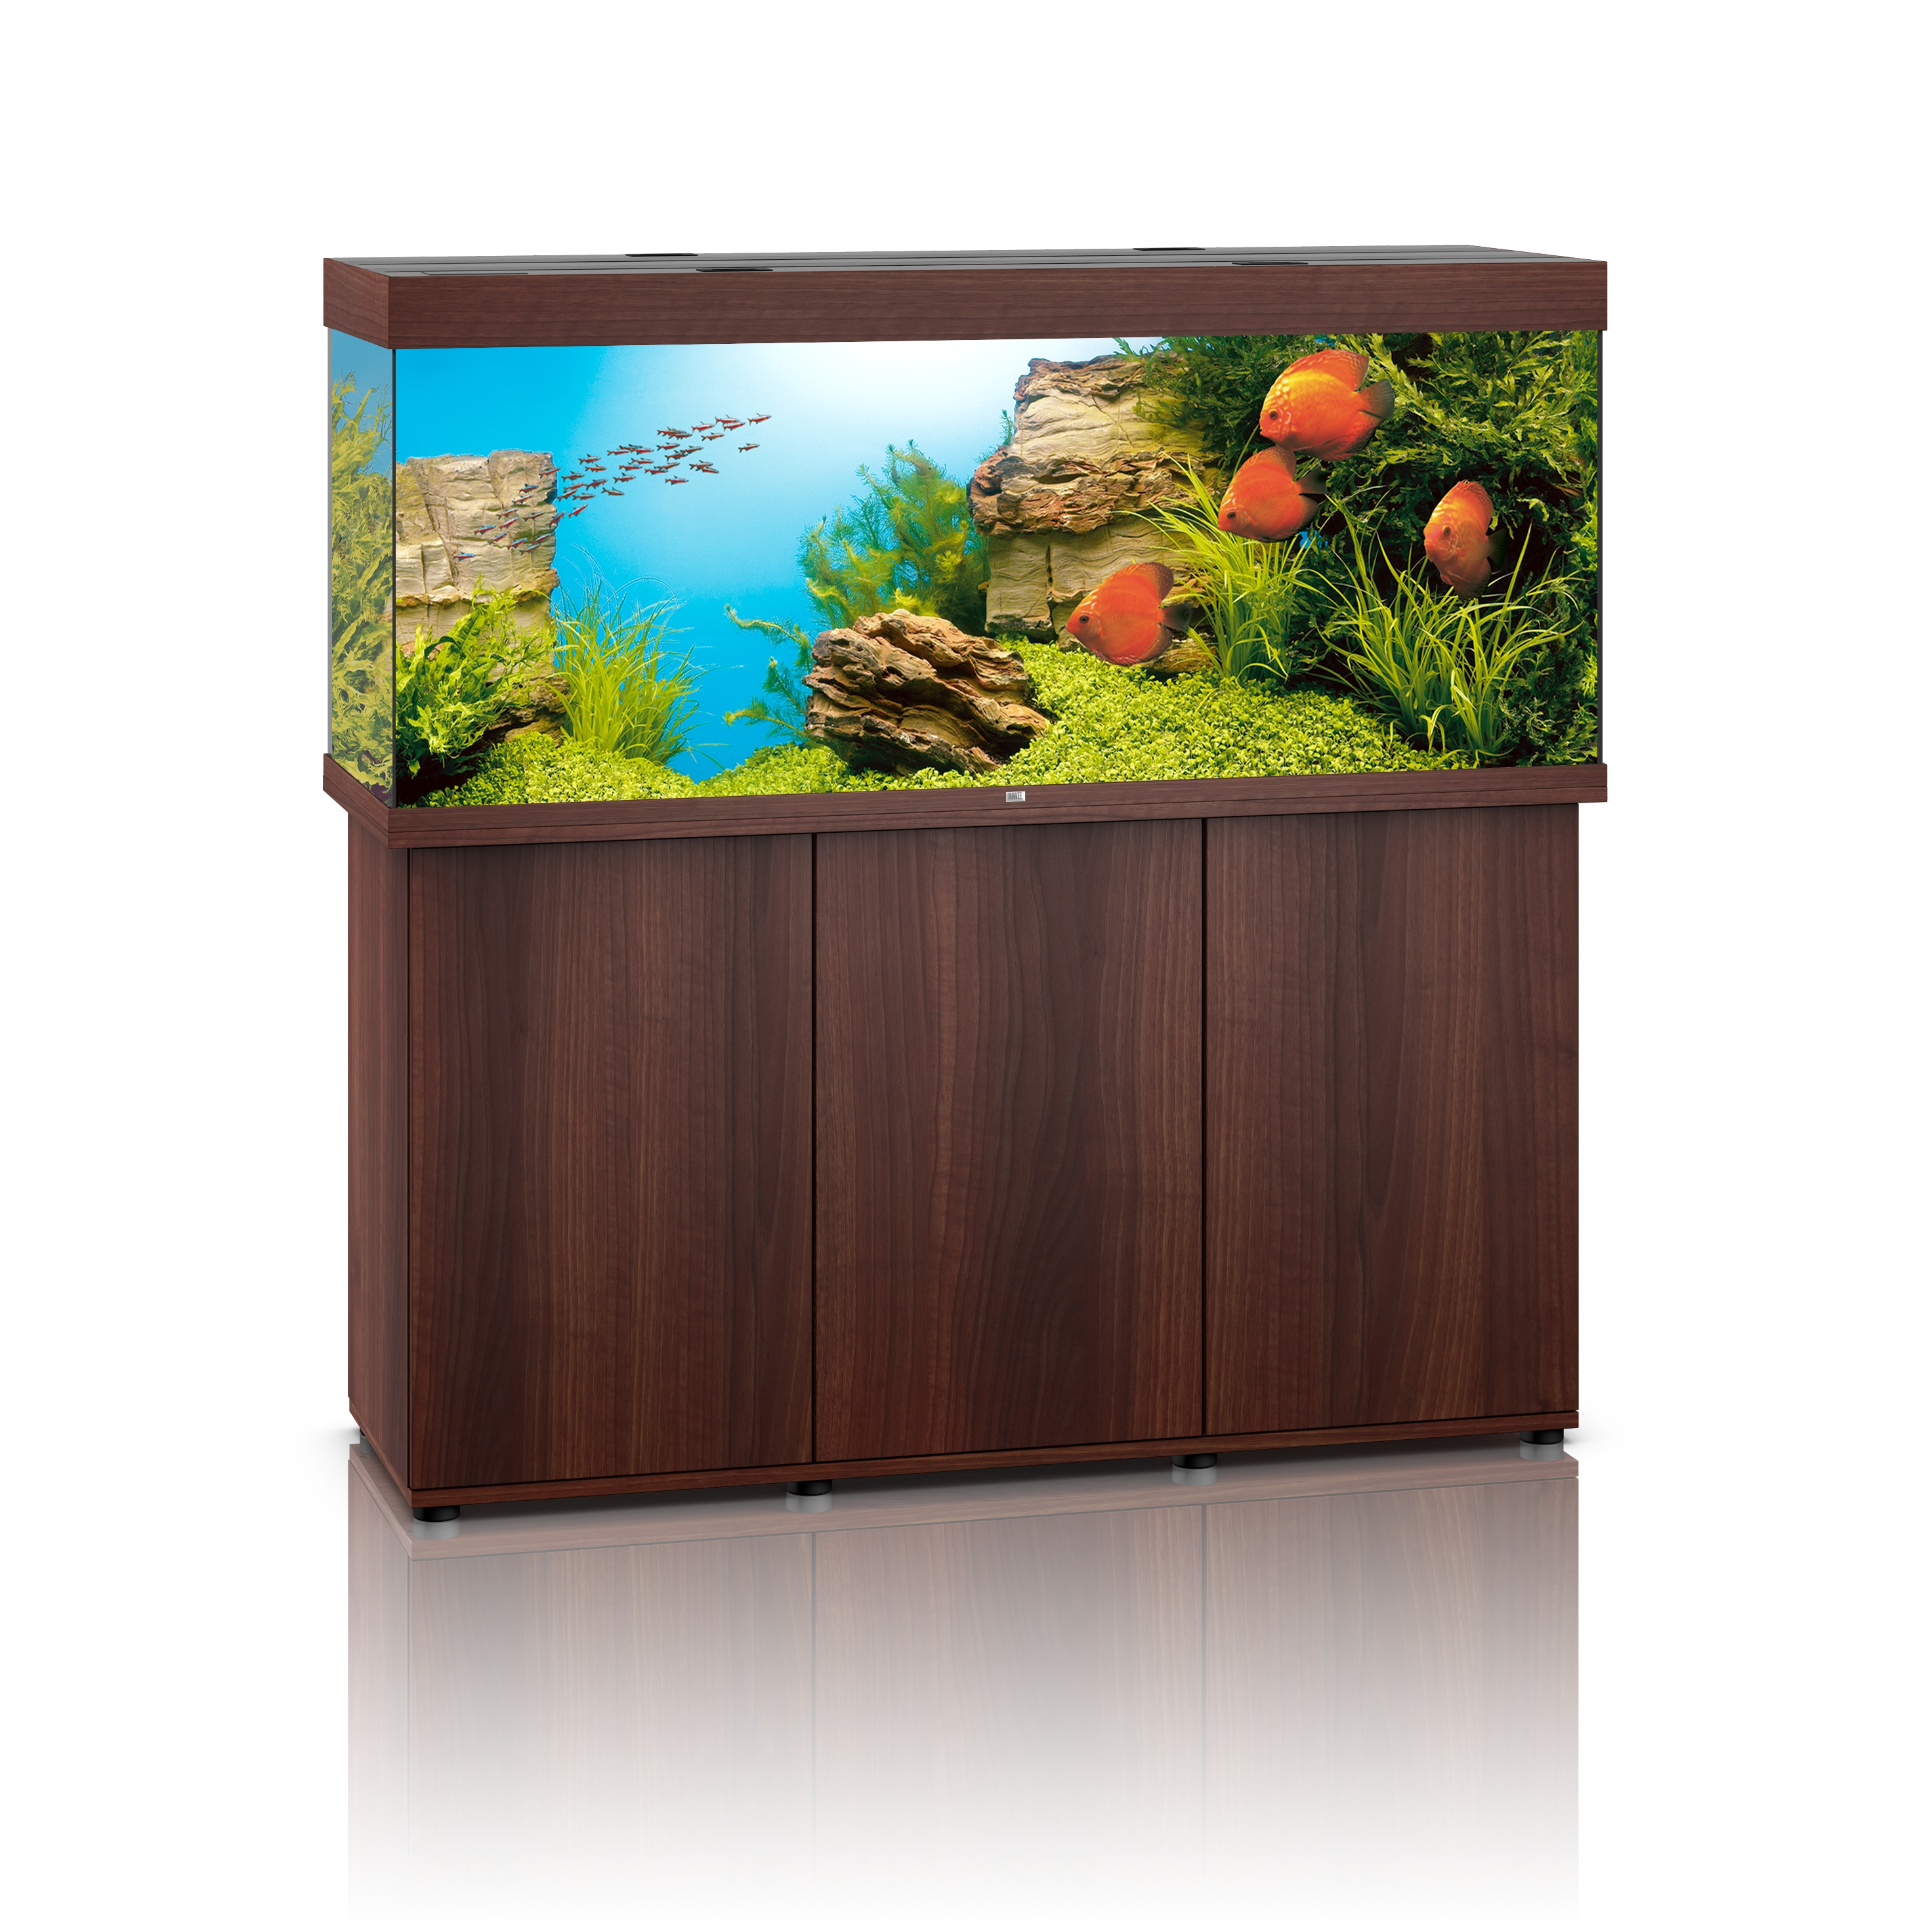 Aquarium Et Meuble Aquariums Meubles Aquariums Juwel Meuble Rio 400 450 Brun